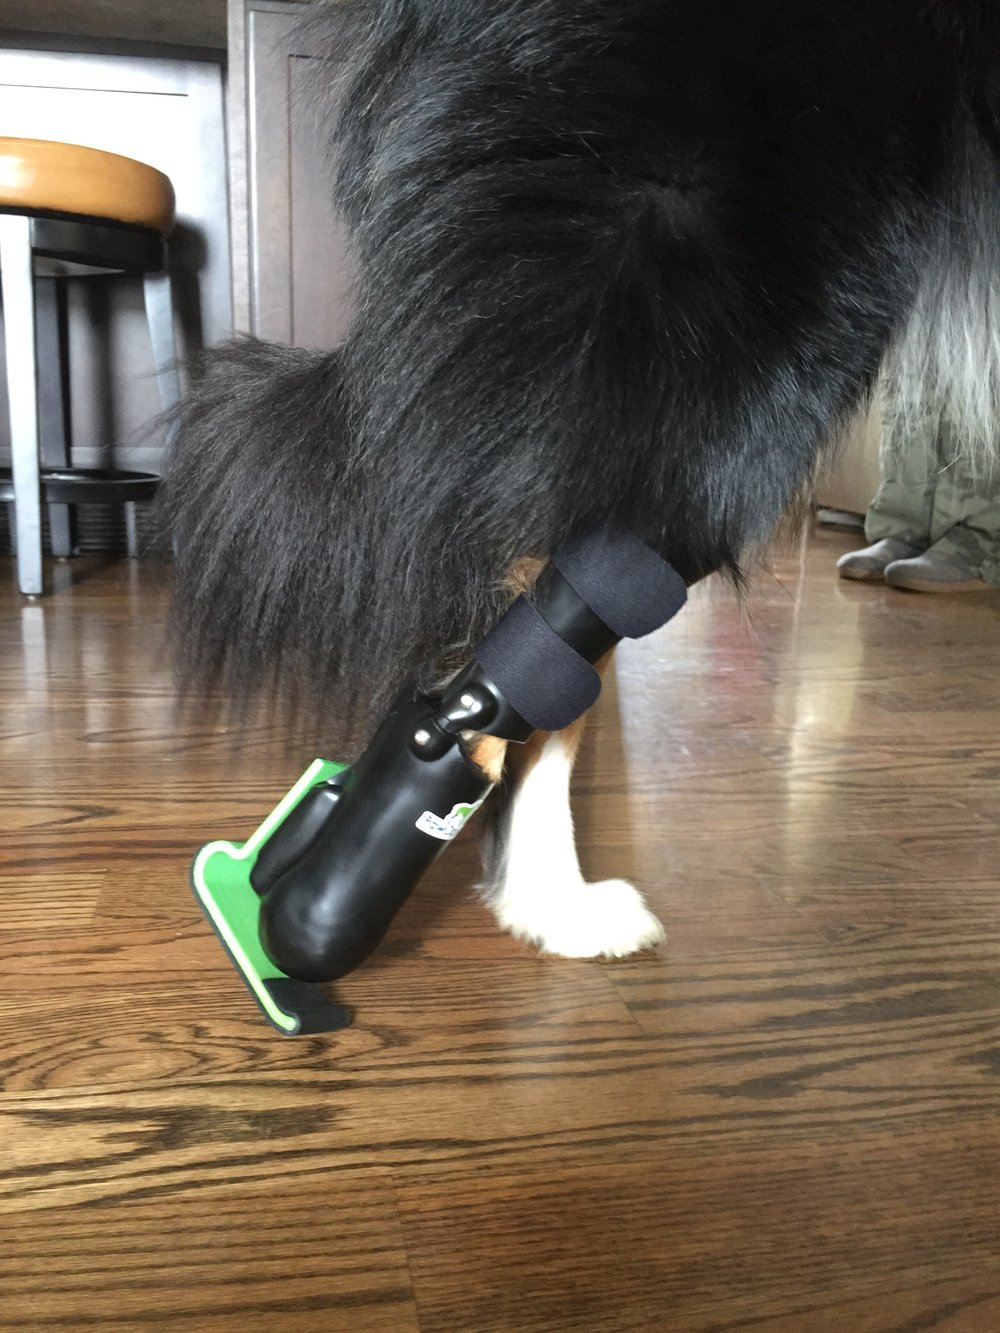 Canine Metatarsal Level Prosthesis w/ 3D Printed Foot